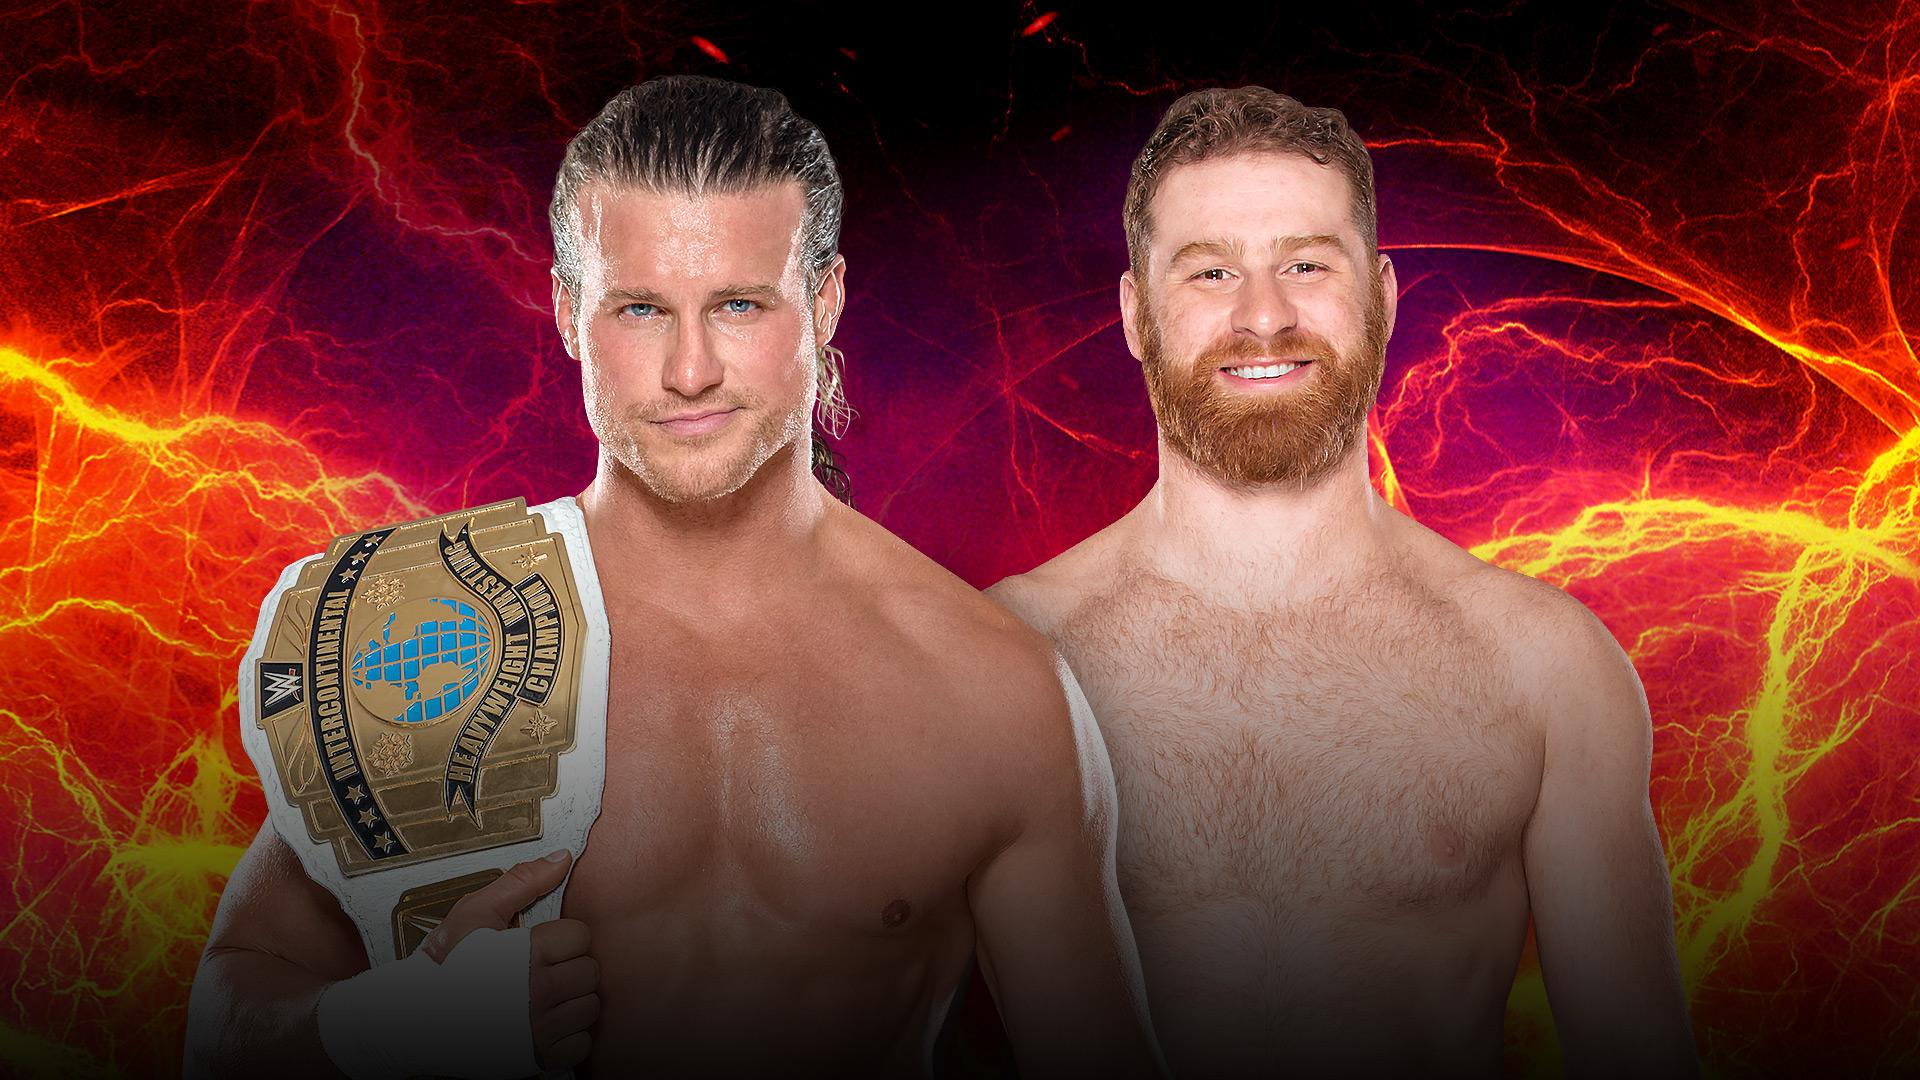 Intercontinental Champion Dolph Ziggler vs Sami Zayn